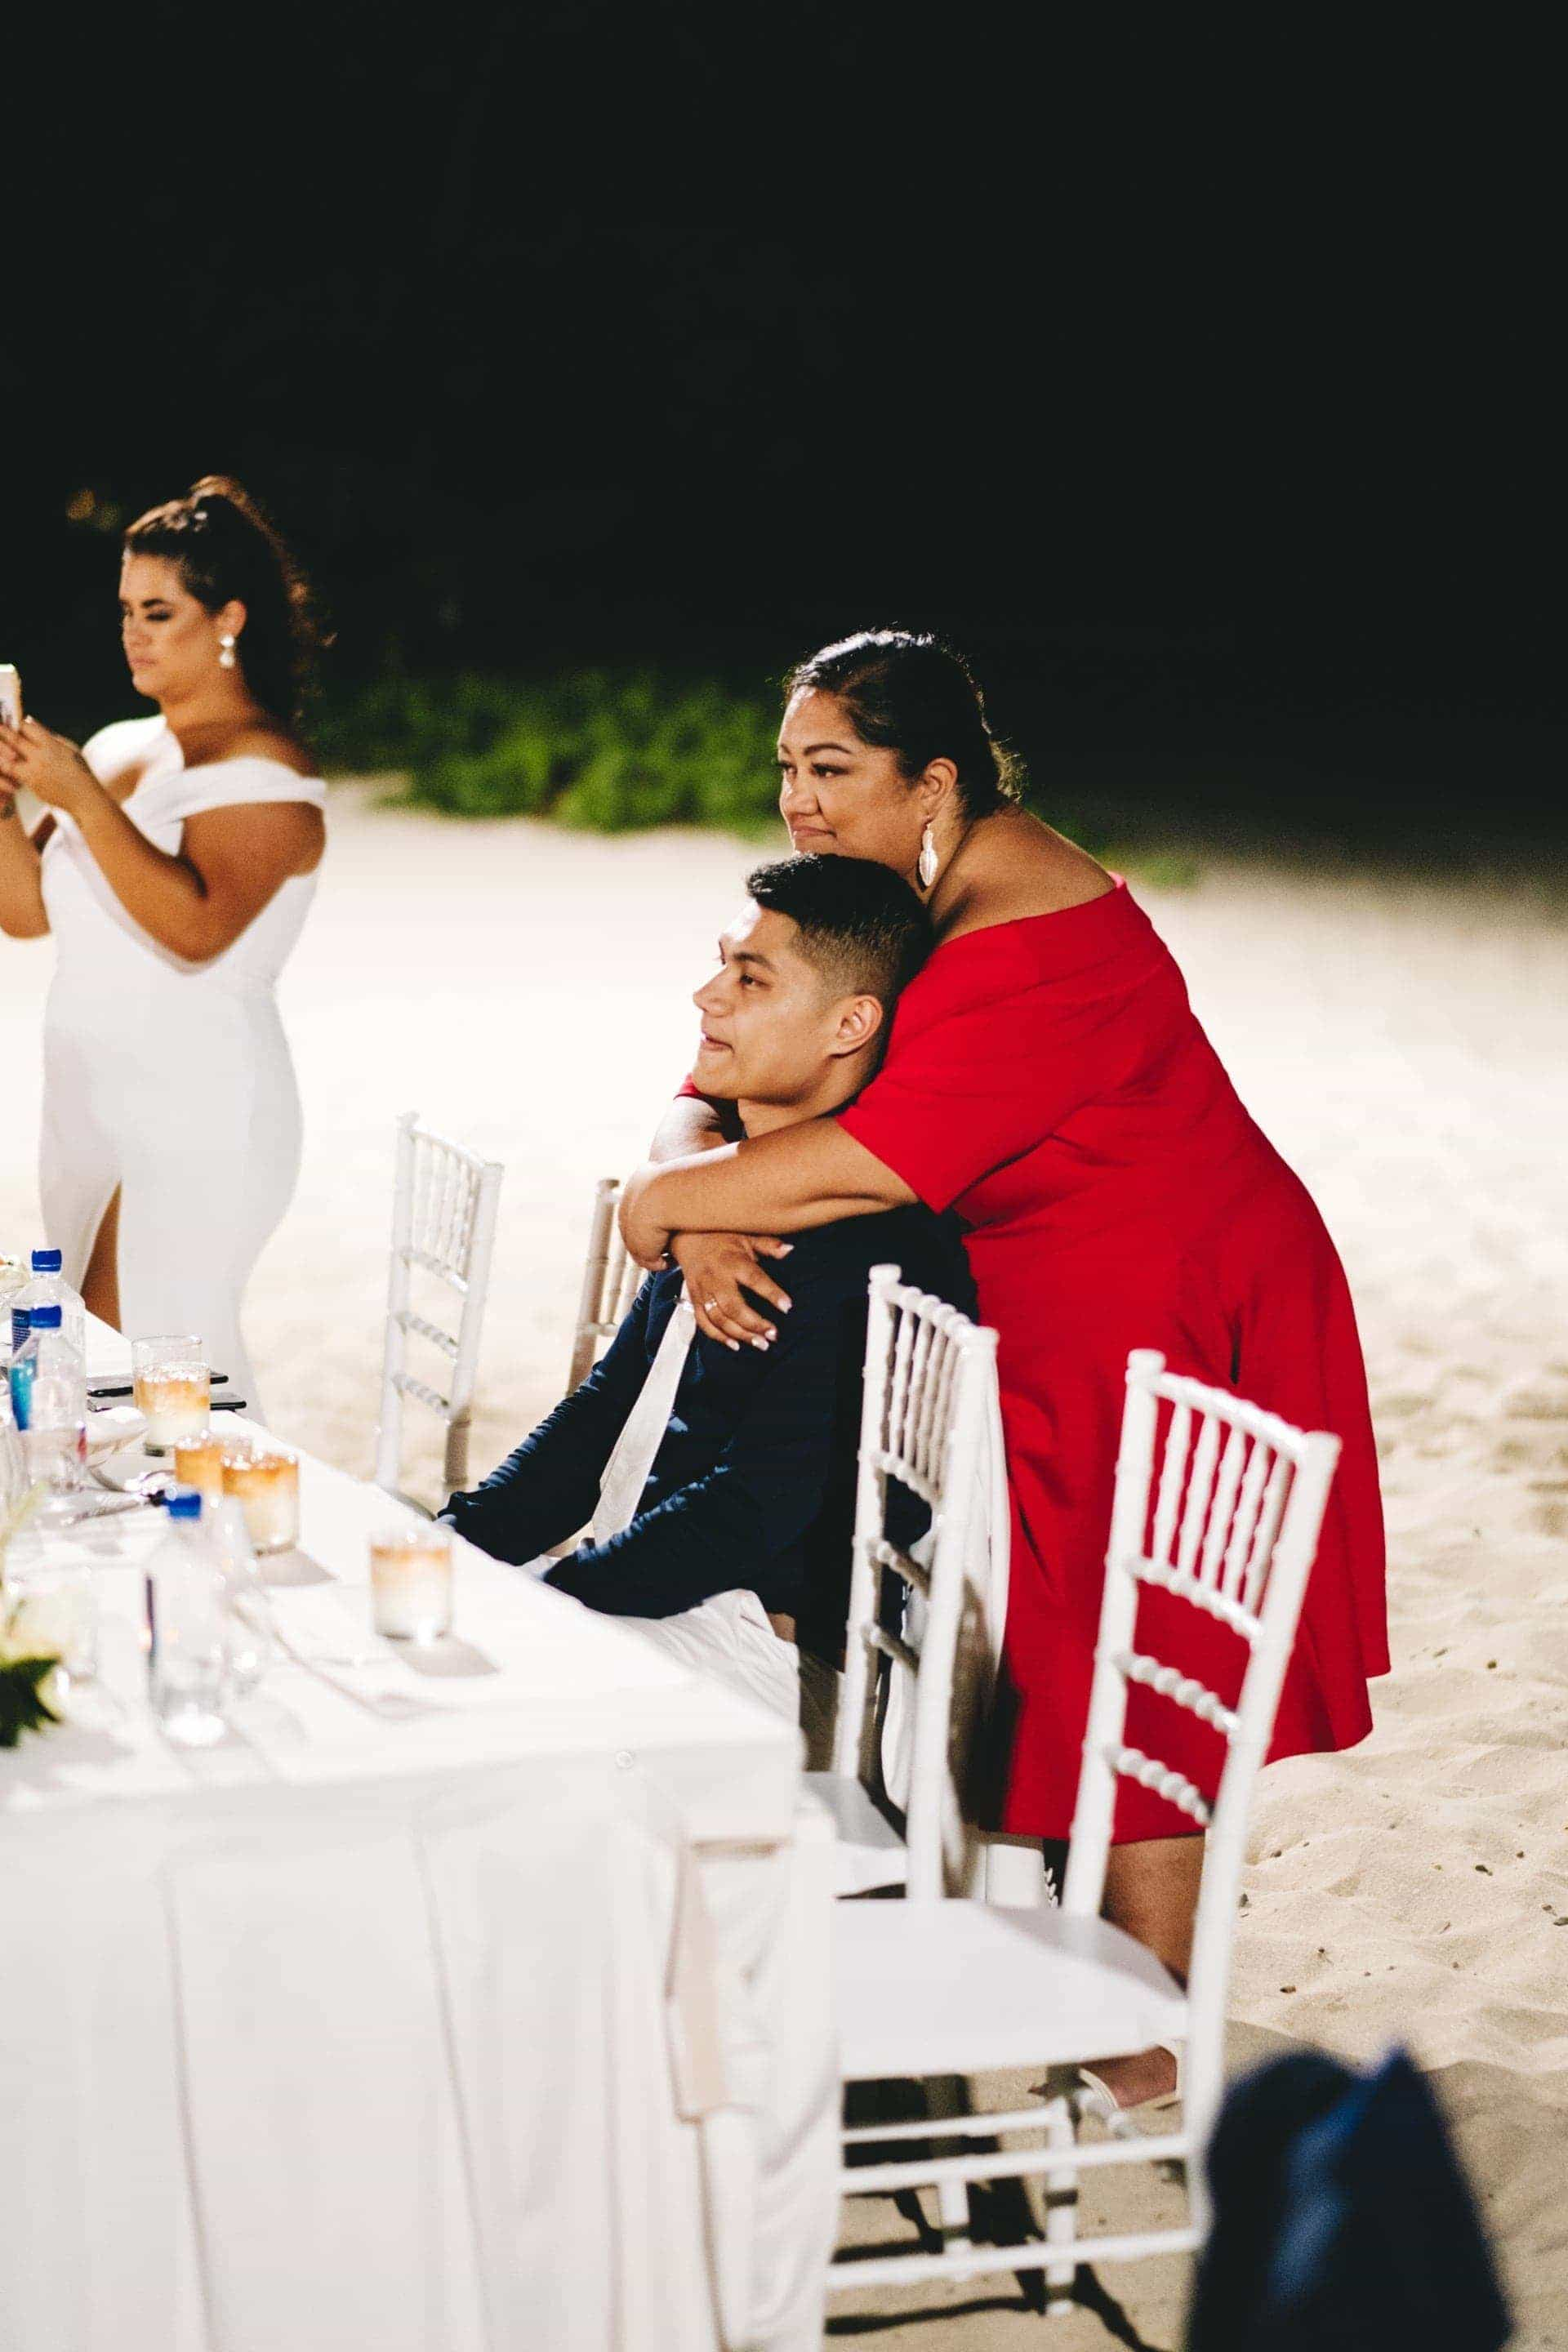 an emotional groom is hugged by his mother as they watch the bride and her father dance